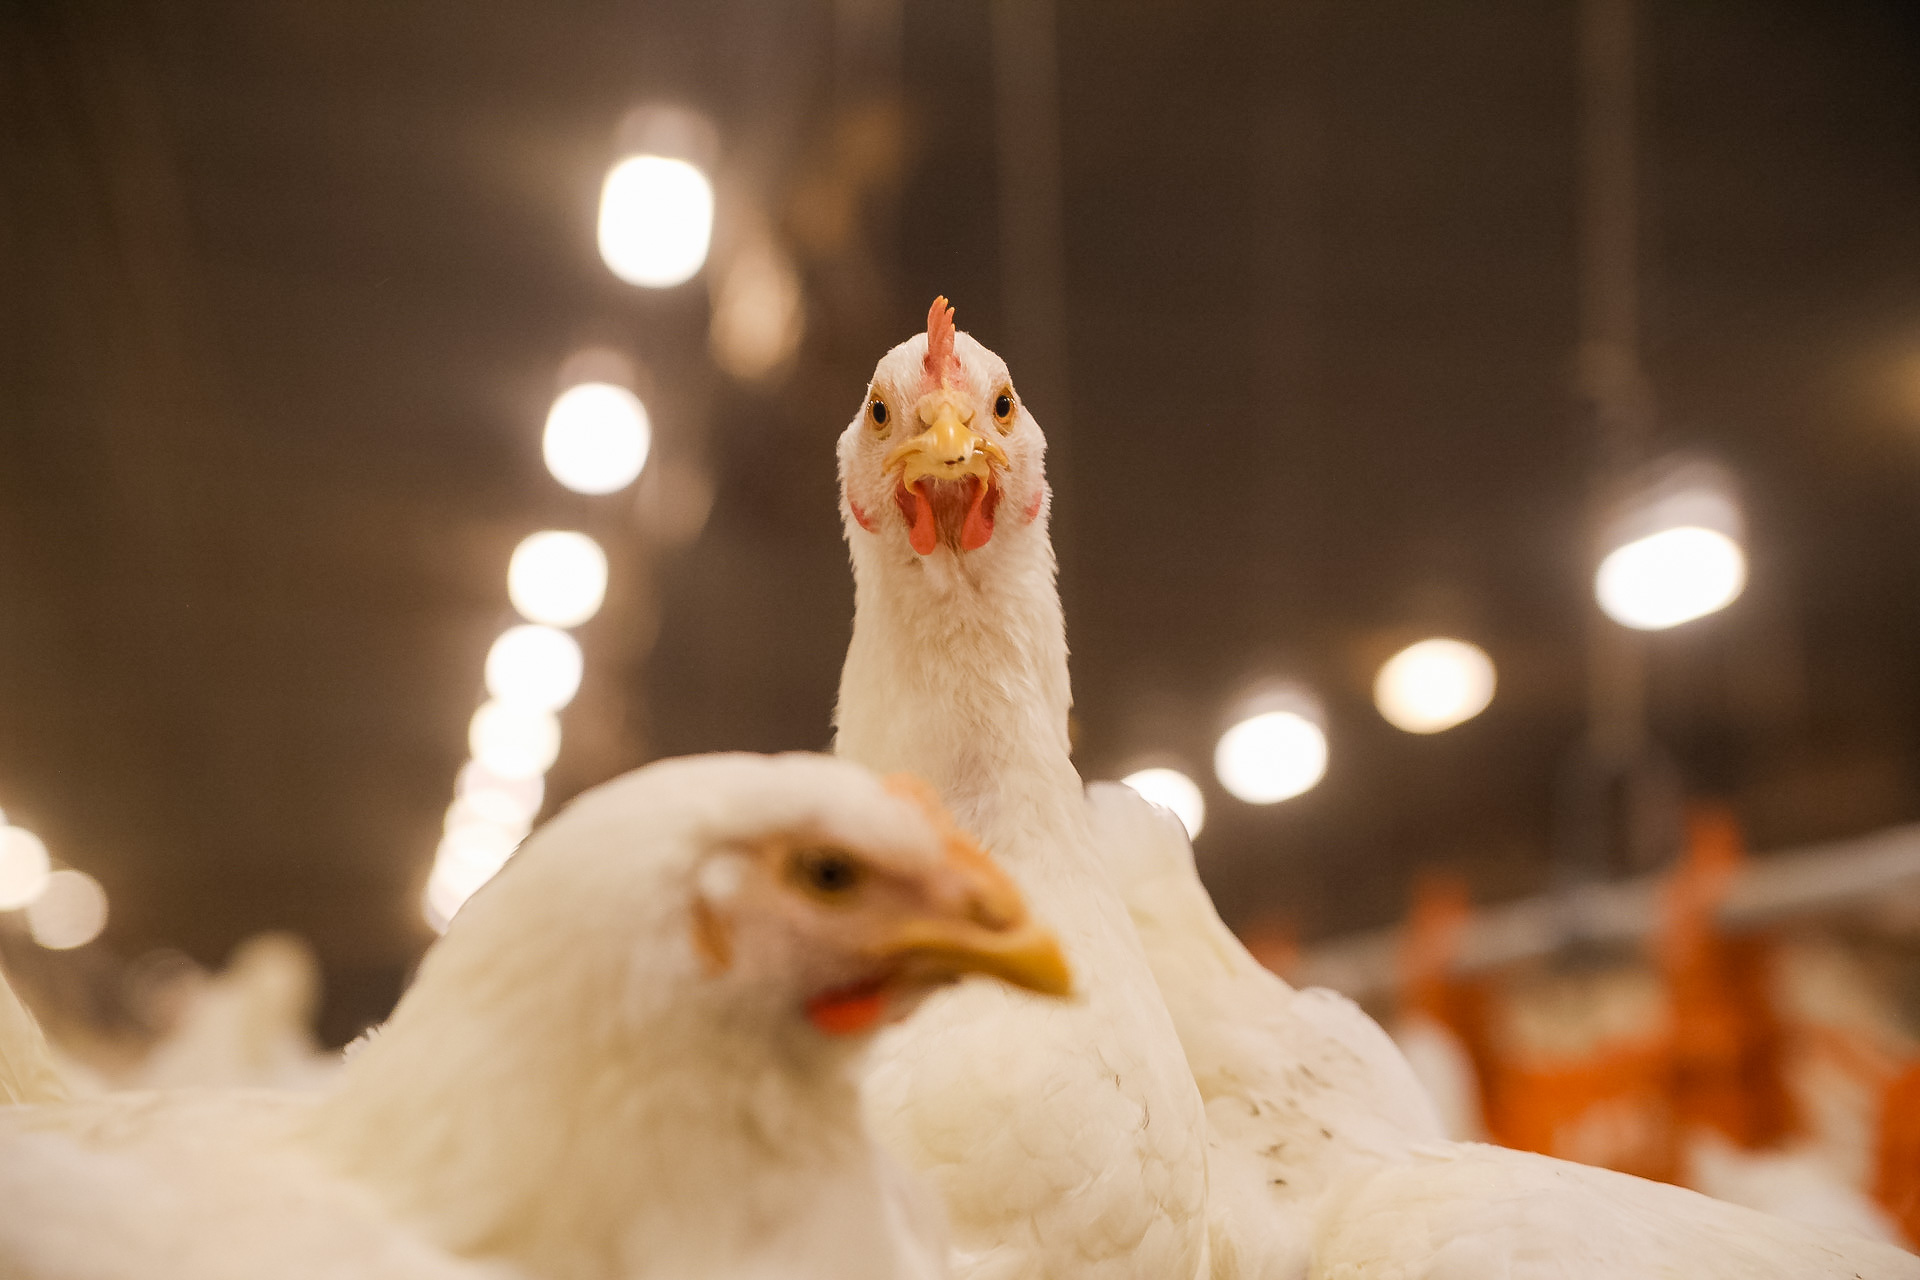 Lincoln Premium Poultry adds value to Nebraska grain and creates economic opportunities